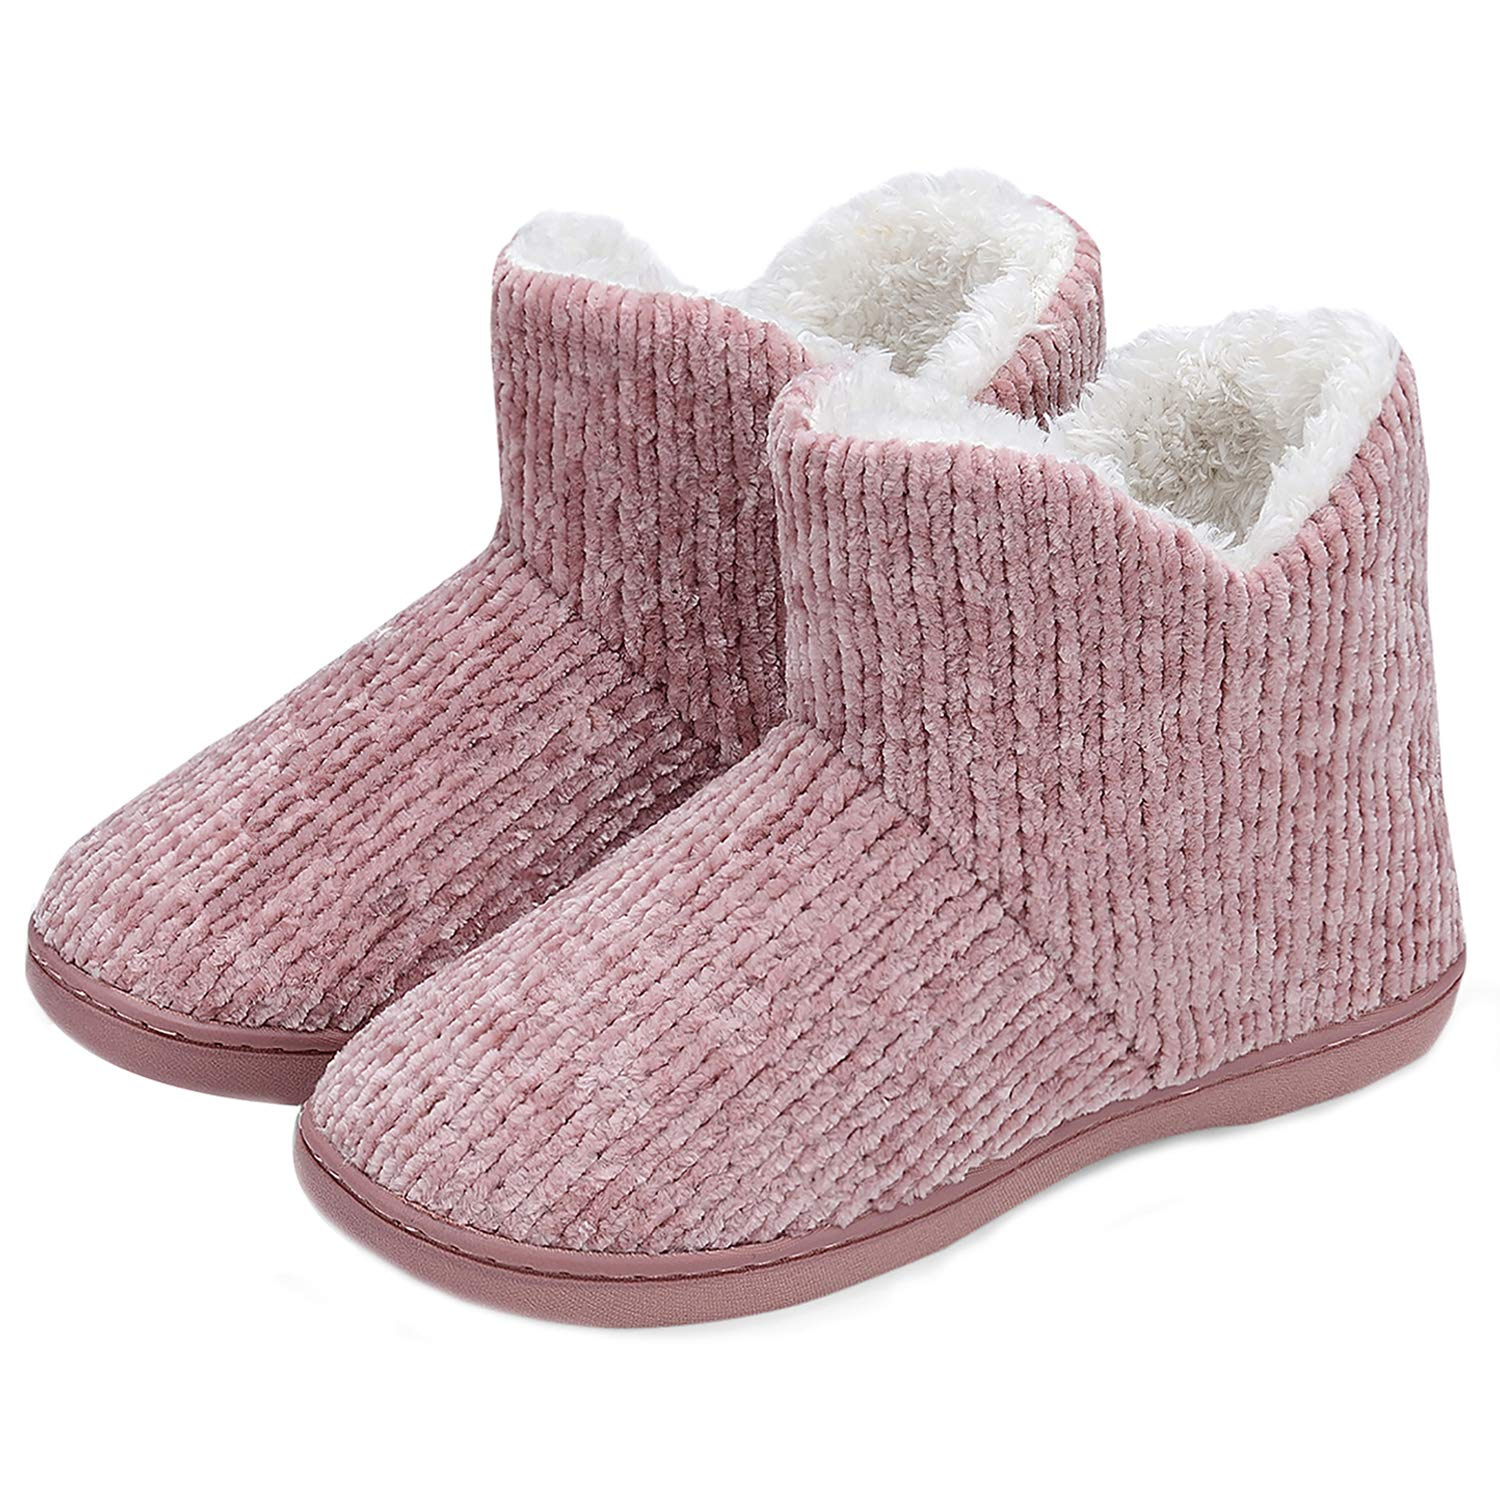 ac5697657674 TUOBUQU Womens Mule Slippers Soft Memory Foam Cosy Indoor Warm Winter  Slippers  Amazon.co.uk  Shoes   Bags